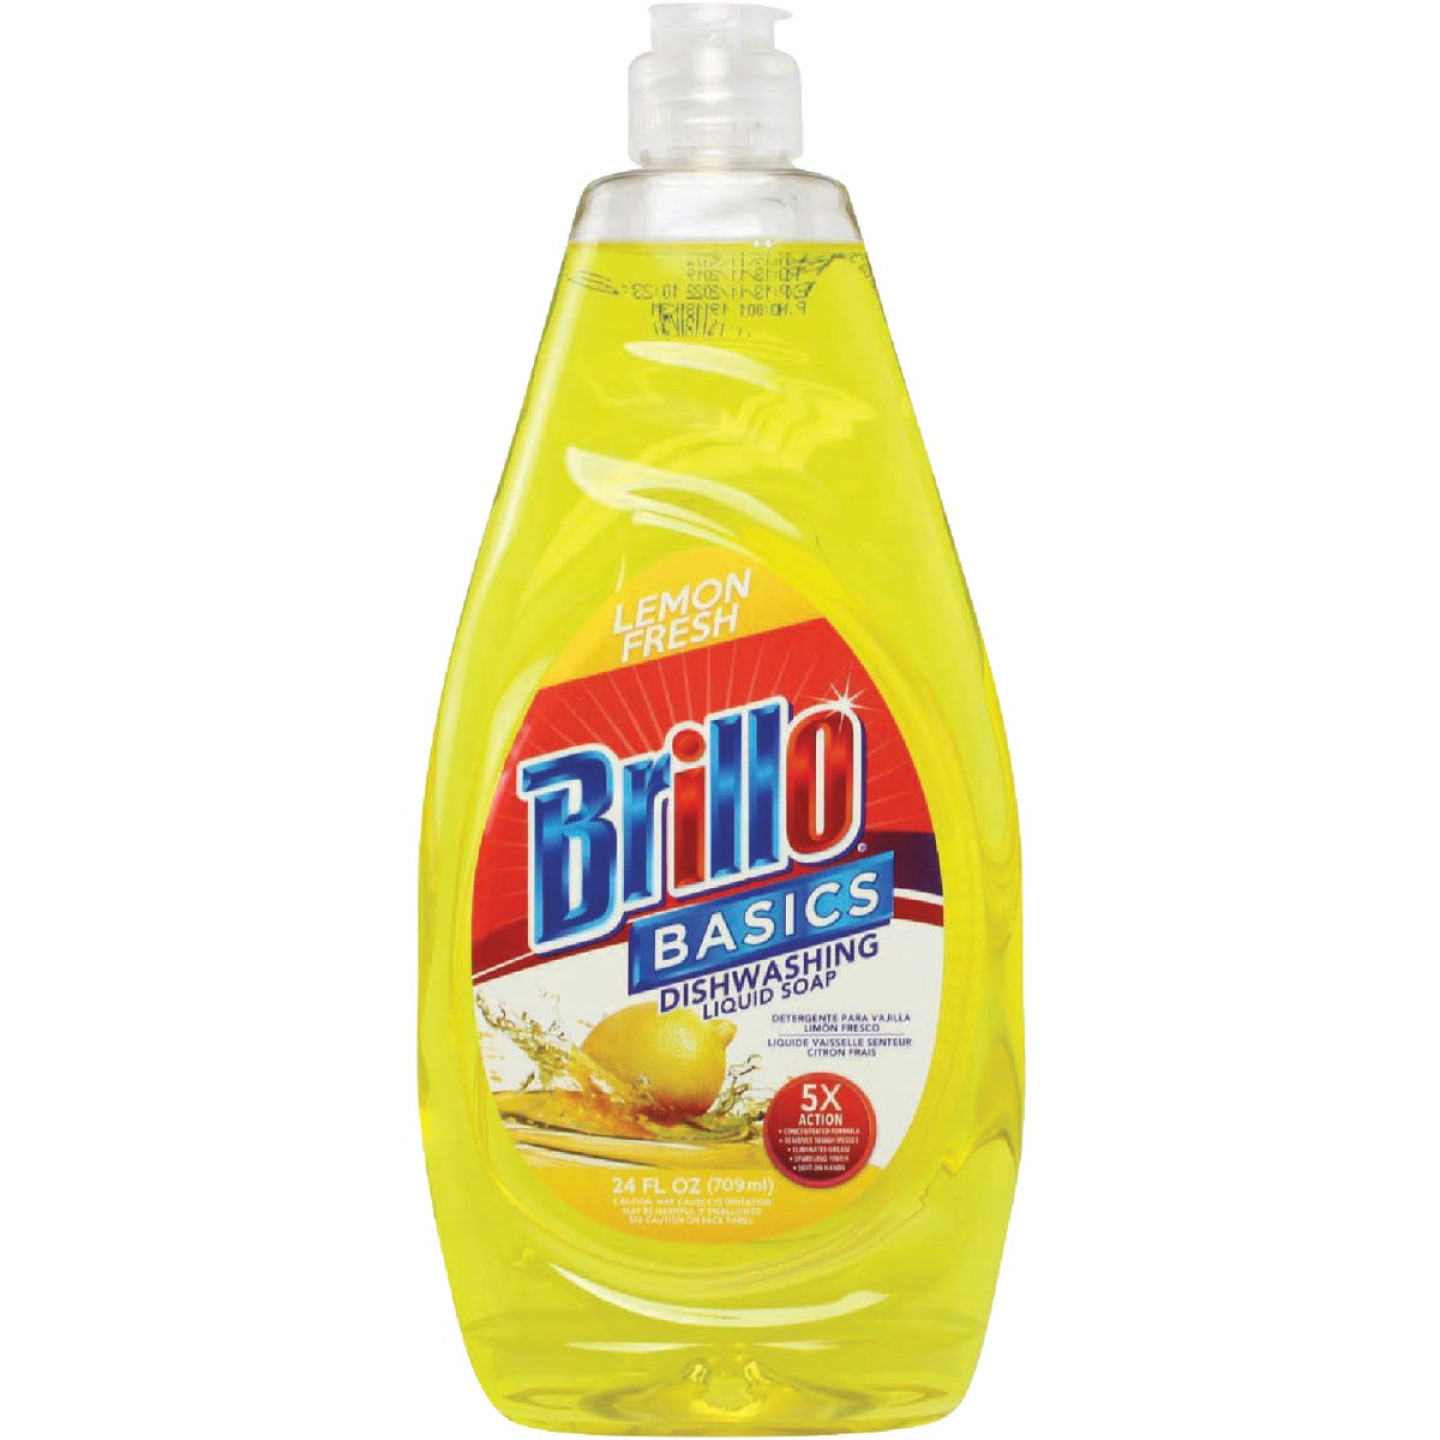 Brillo Basics 24 Oz. Liquid Dish Soap Image 1